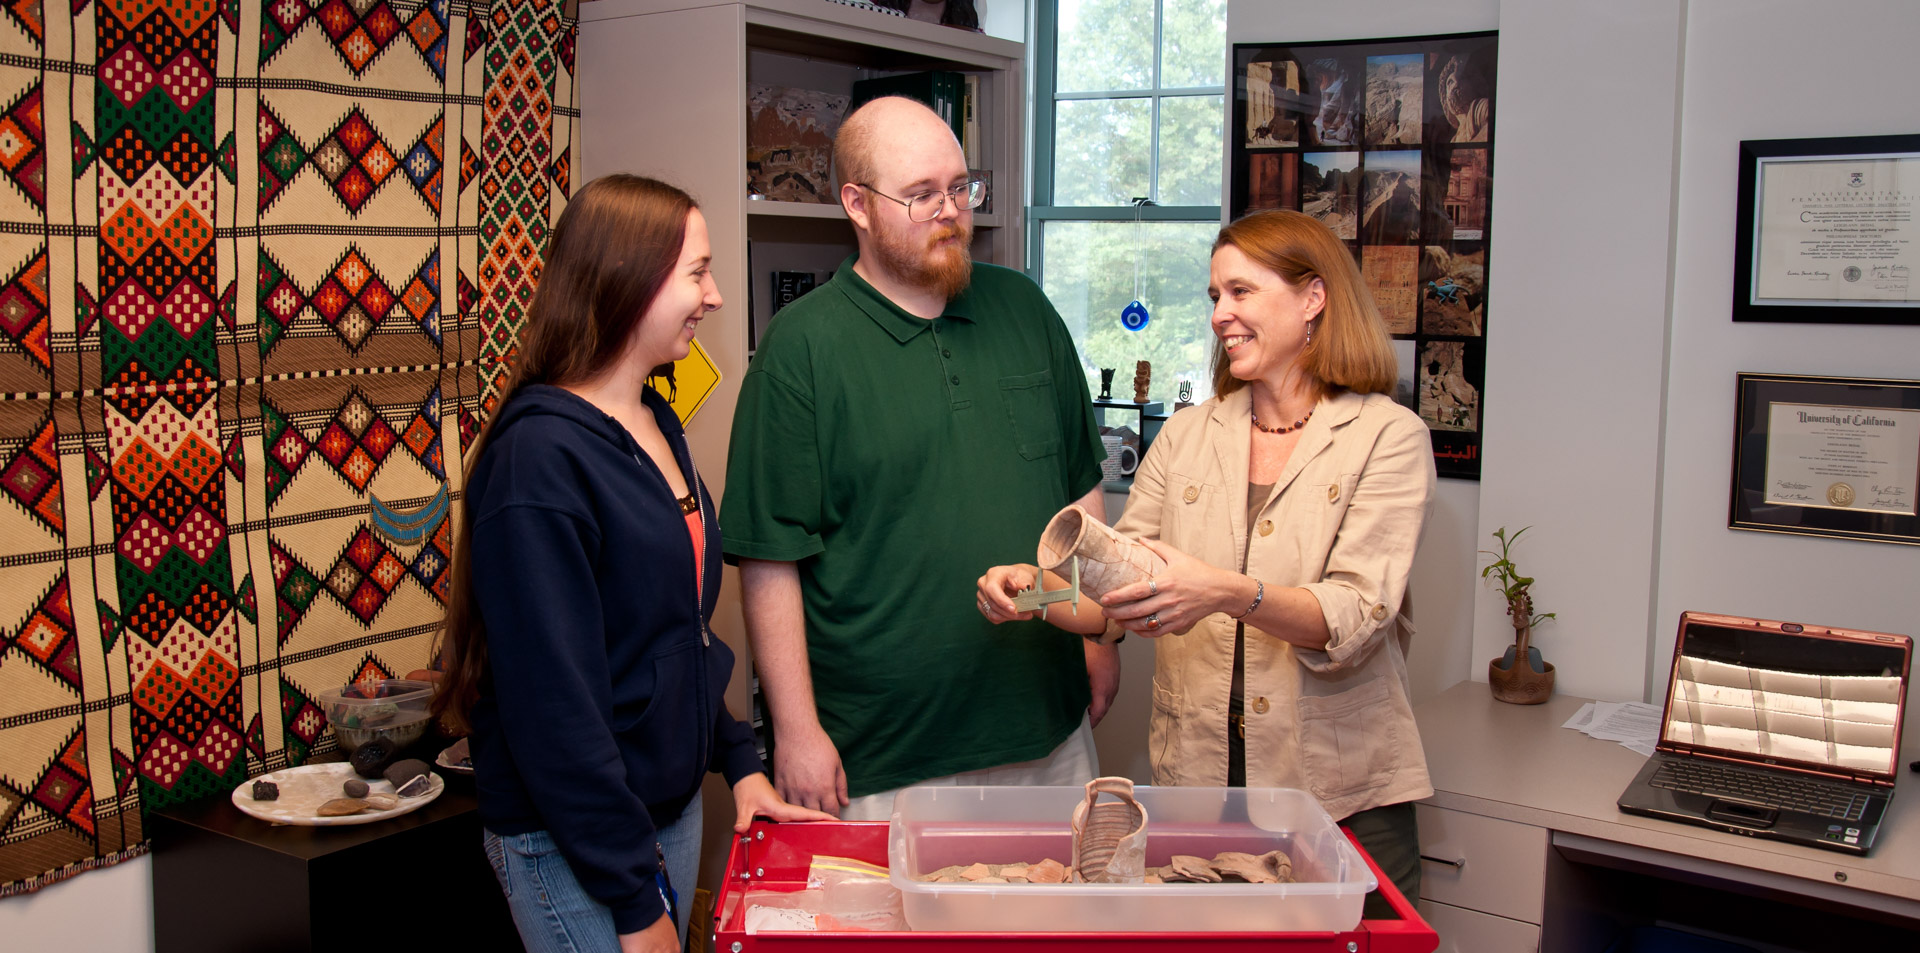 Professor demonstrating to two students how to measure a very old clay jar